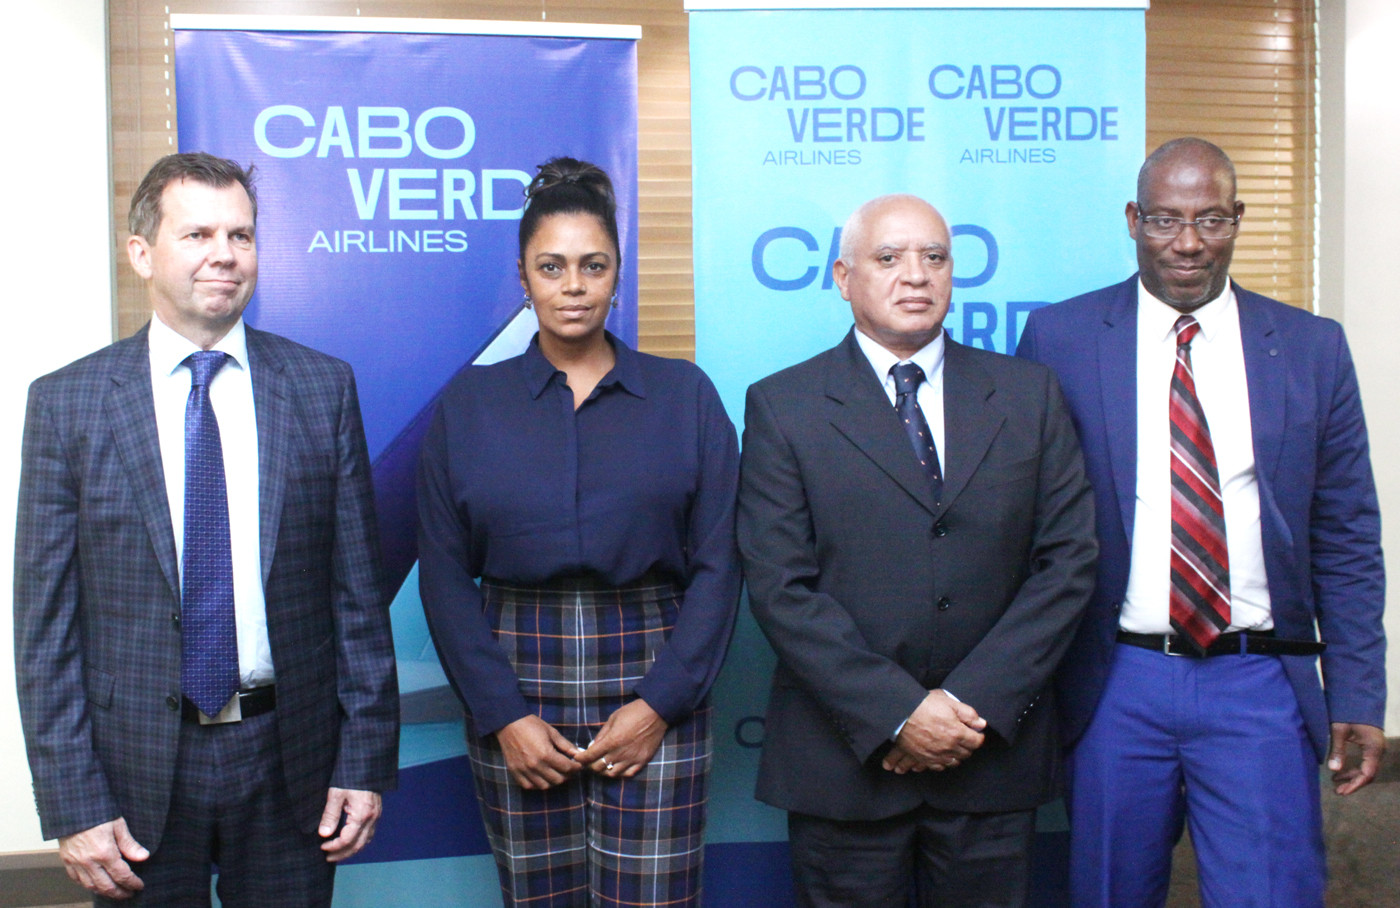 Cabo Verde Airlines announces direct Lagos-Cape Verde flights